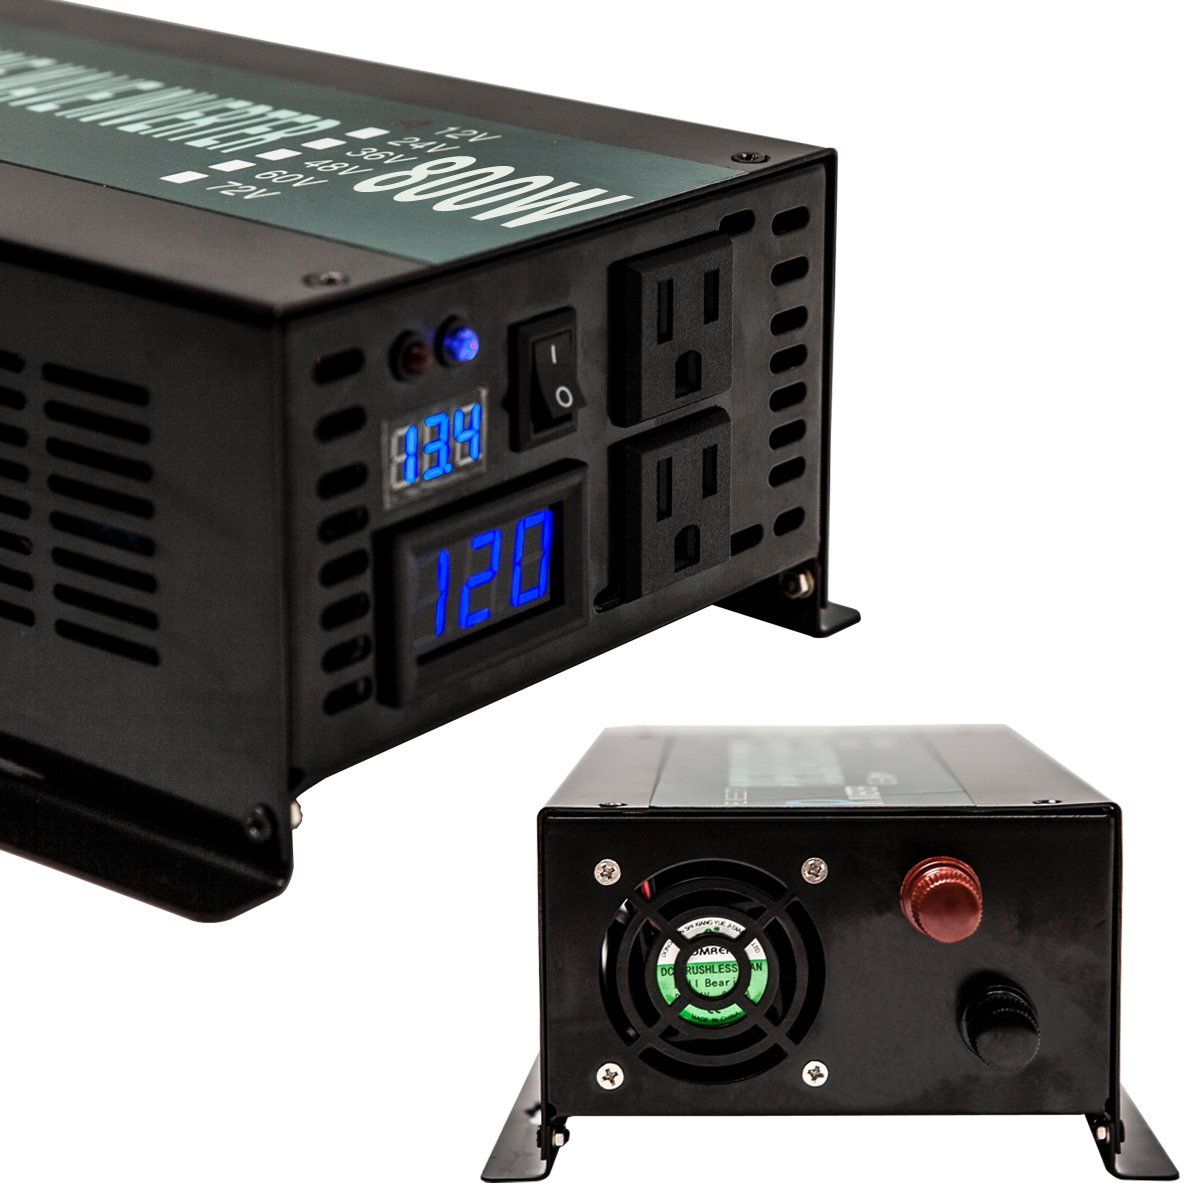 WZRELB Reliable Power Inverter 800w 1600w Peak Pure Sine Wave Inverter 12v 120v 60hz LED Display by WZRELB (Image #2)